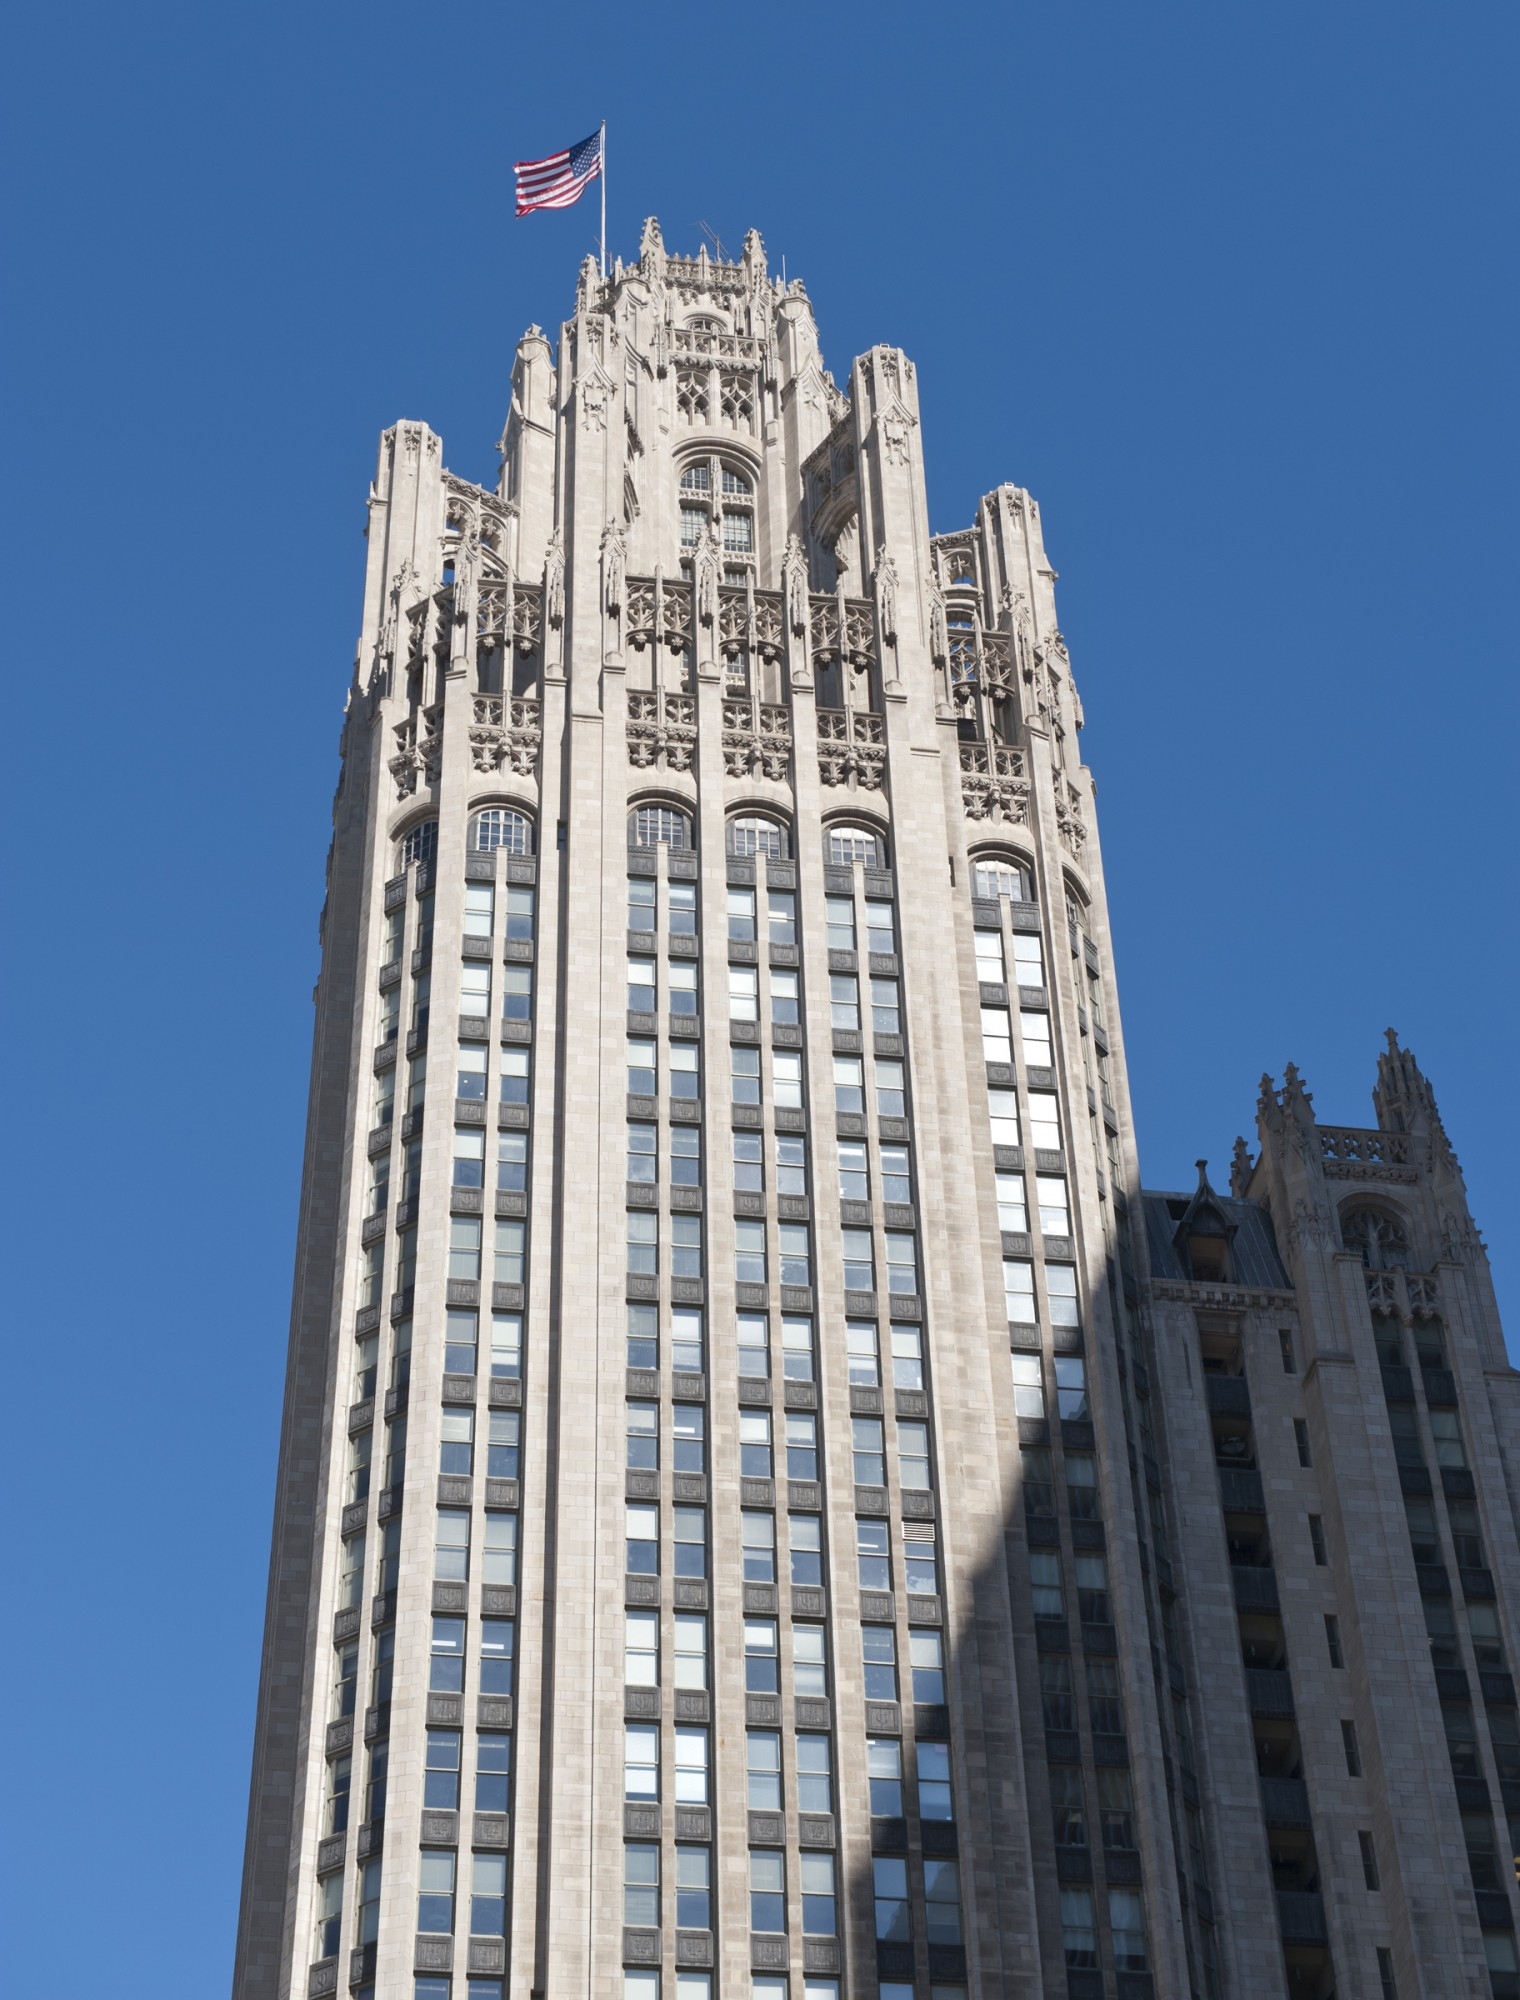 Architecture Buildings In Chicago tribune tower · buildings of chicago · chicago architecture